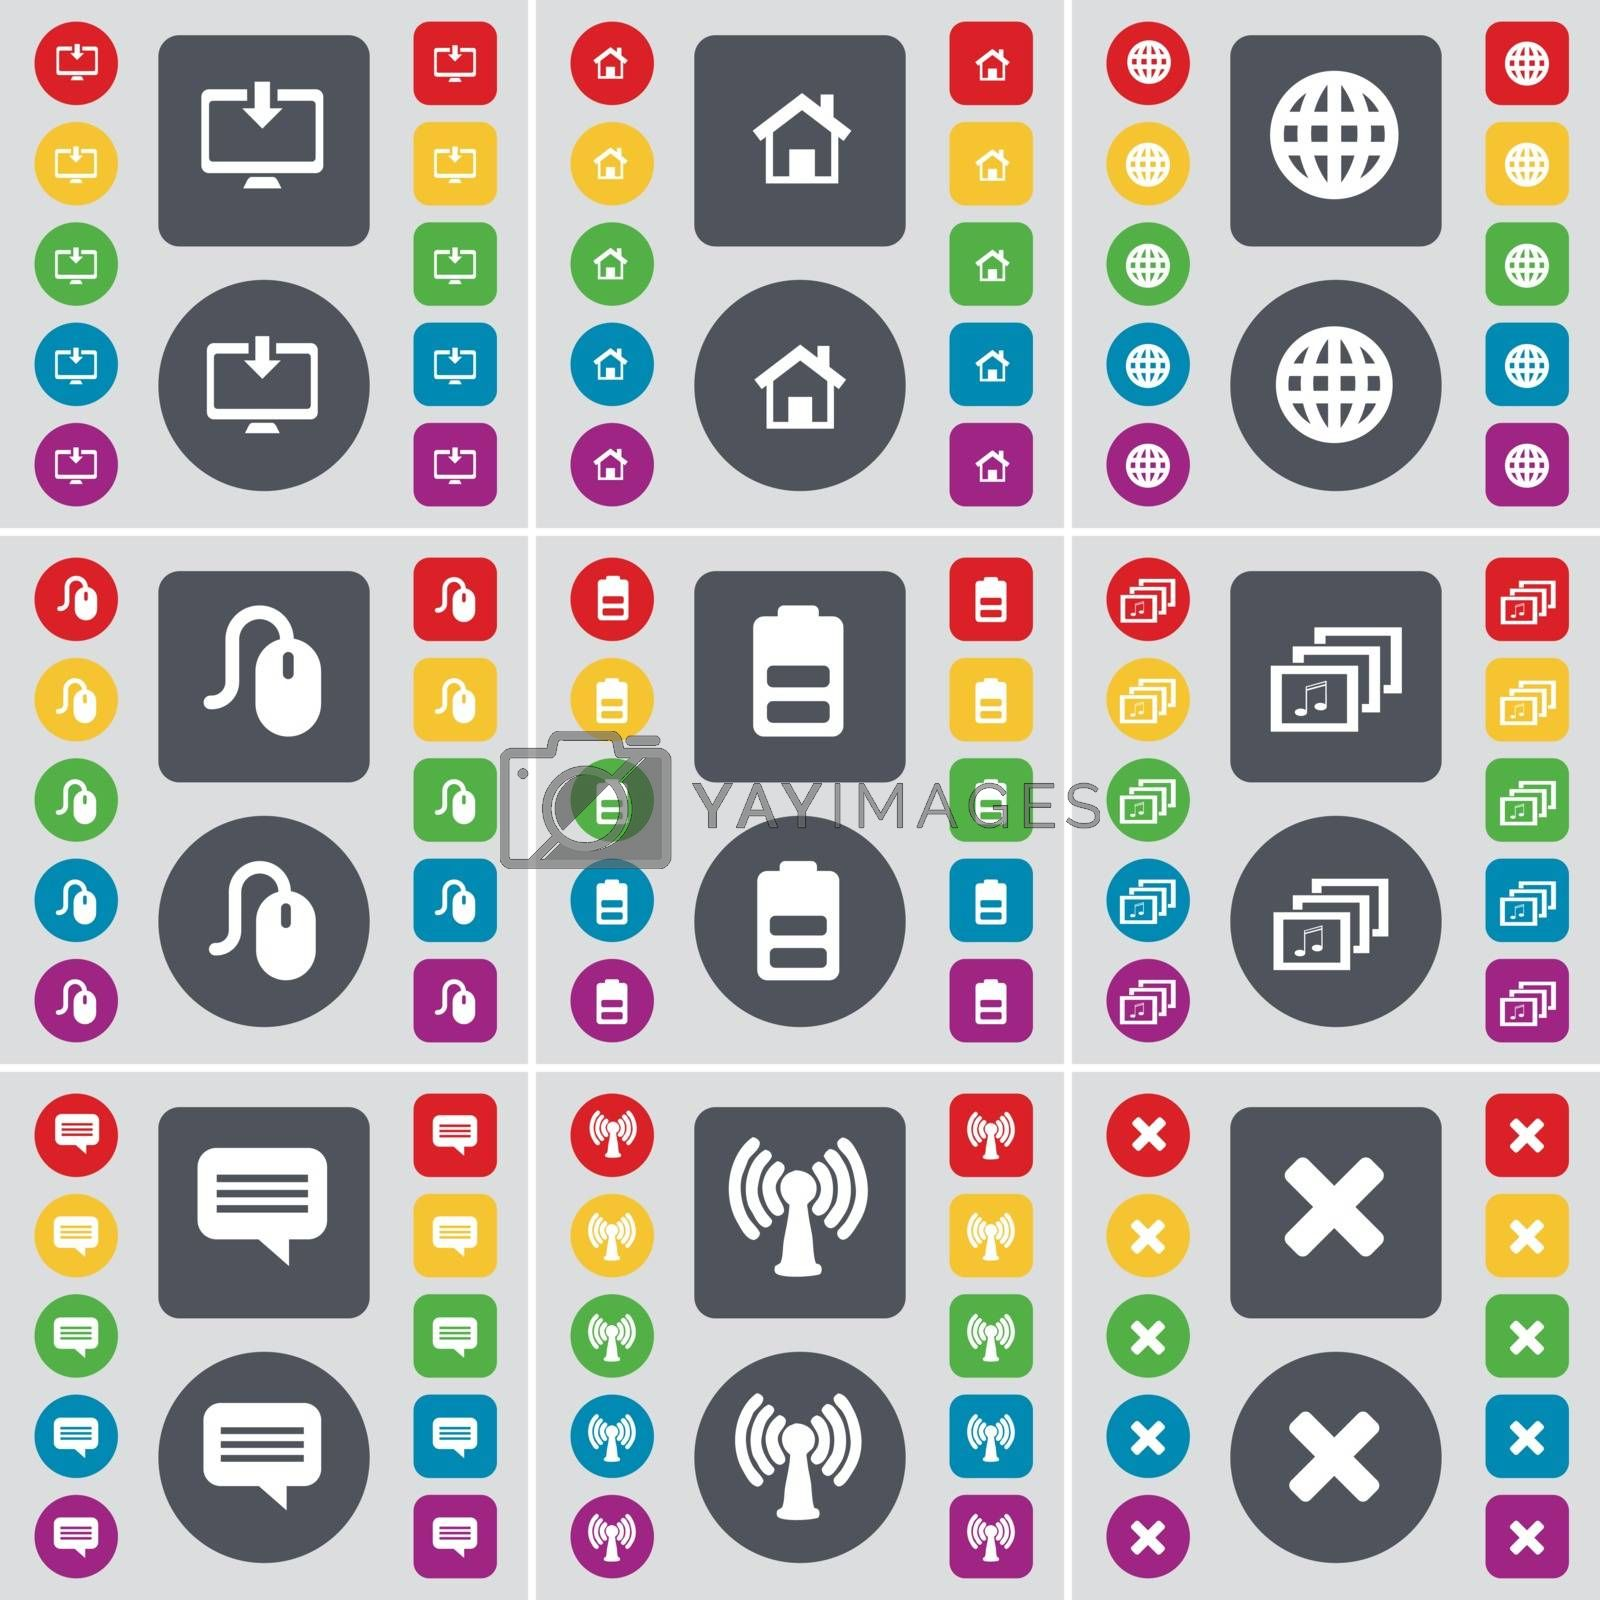 Royalty free image of Monitor, House, Globe, Mouse, Battery, Gallery, Chat bubble, Wi-Fi, Stop icon symbol. A large set of flat, colored buttons for your design. Vector by serhii_lohvyniuk